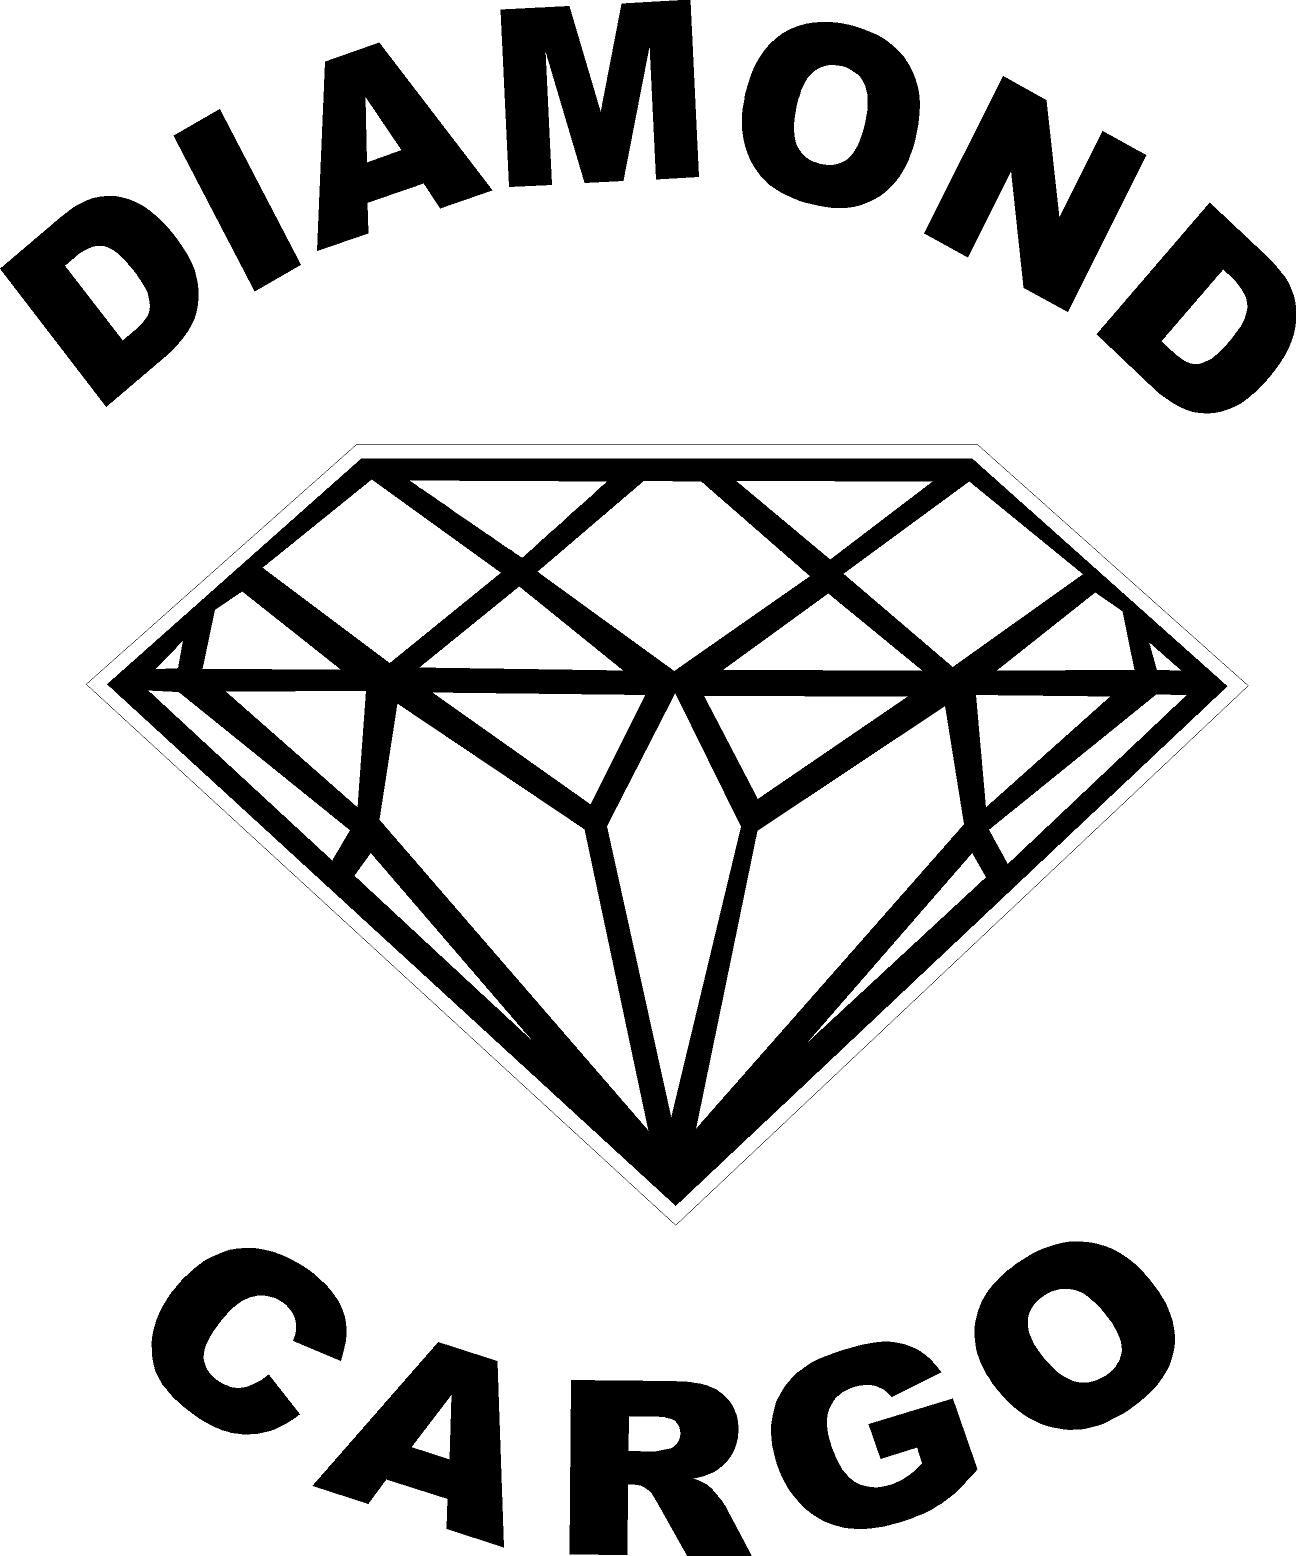 Drawing Sheet for DIAMOND CARGO logo